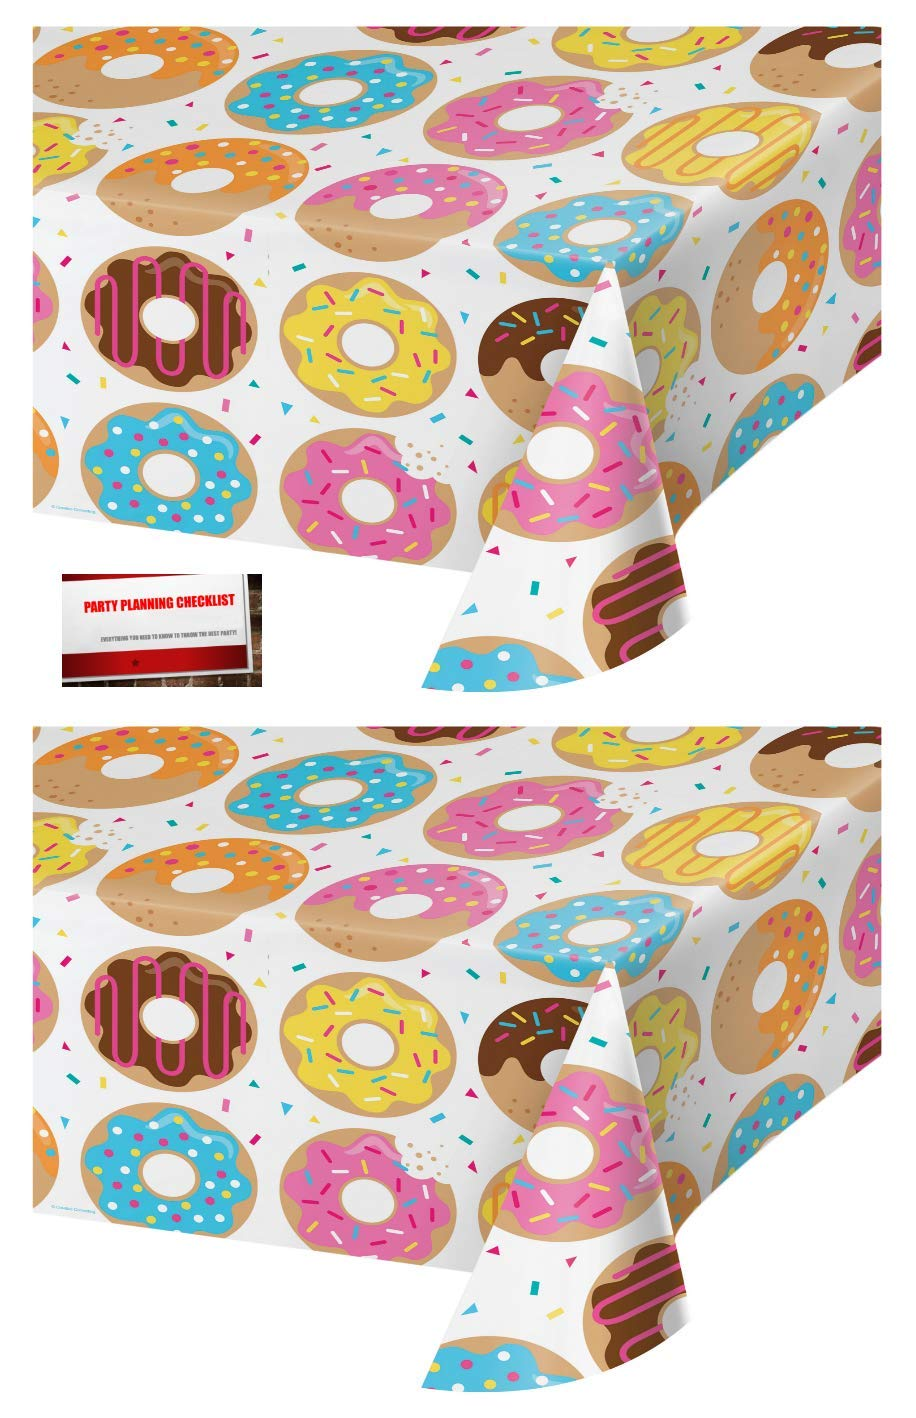 (2 Pack) Donut Dessert Party Plastic Table Cover 54 x 102 Inches (Plus Party Planning Checklist by Mikes Super Store)